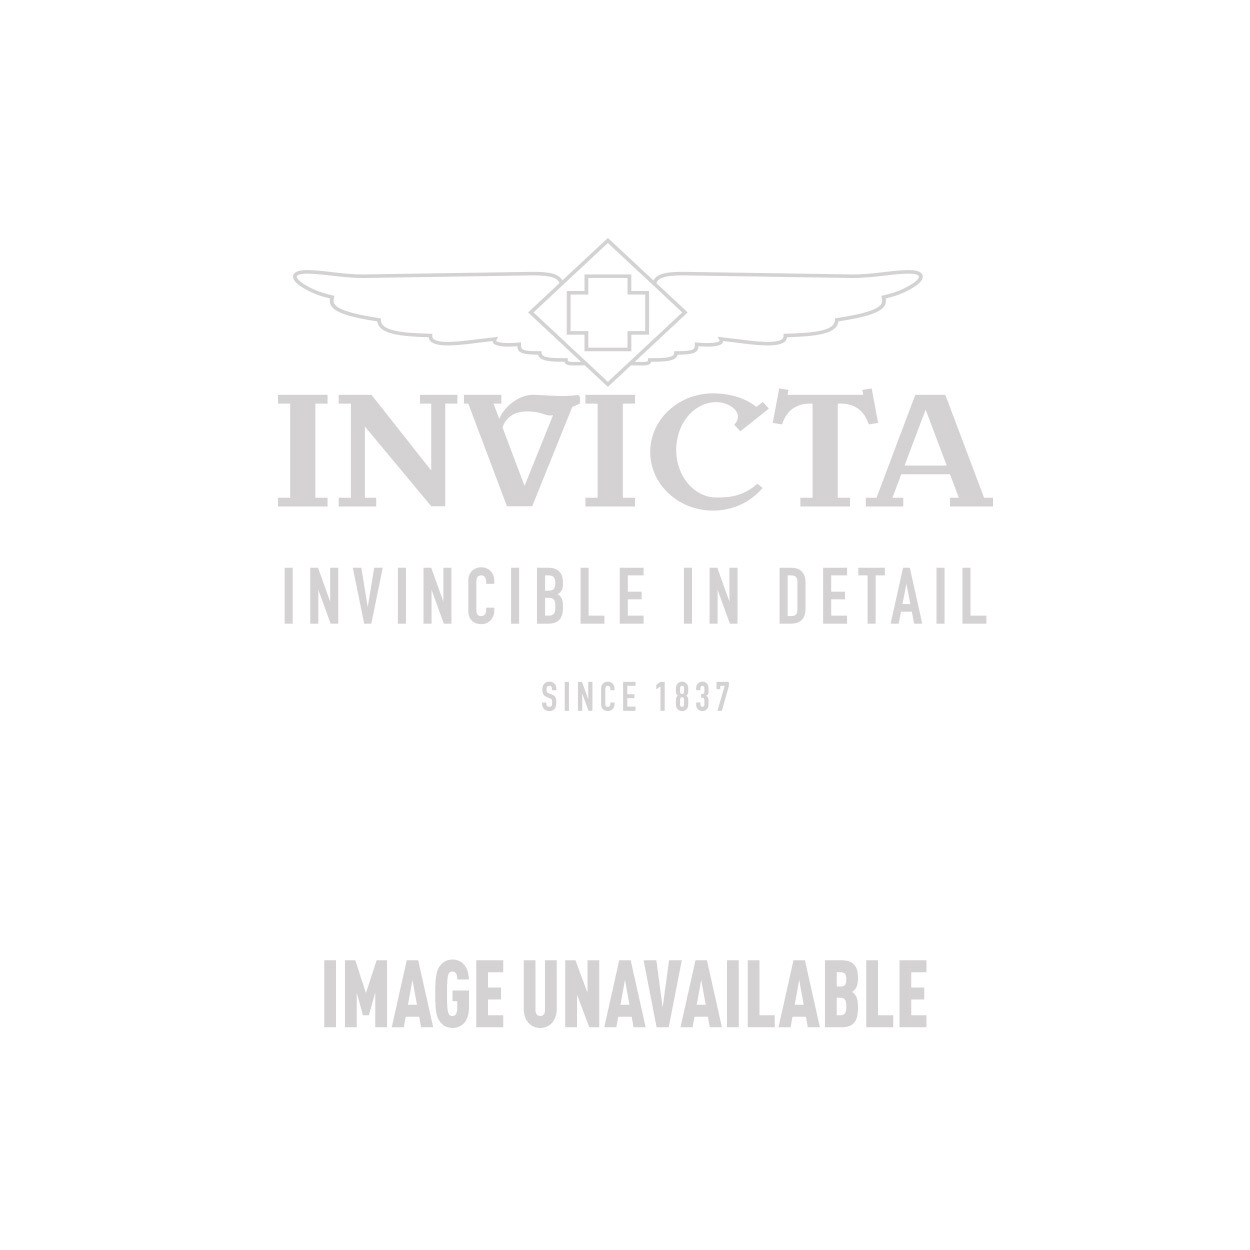 Invicta Sea Base Swiss Made Quartz Watch - Titanium case with Black tone Polyurethane band - Model 17546